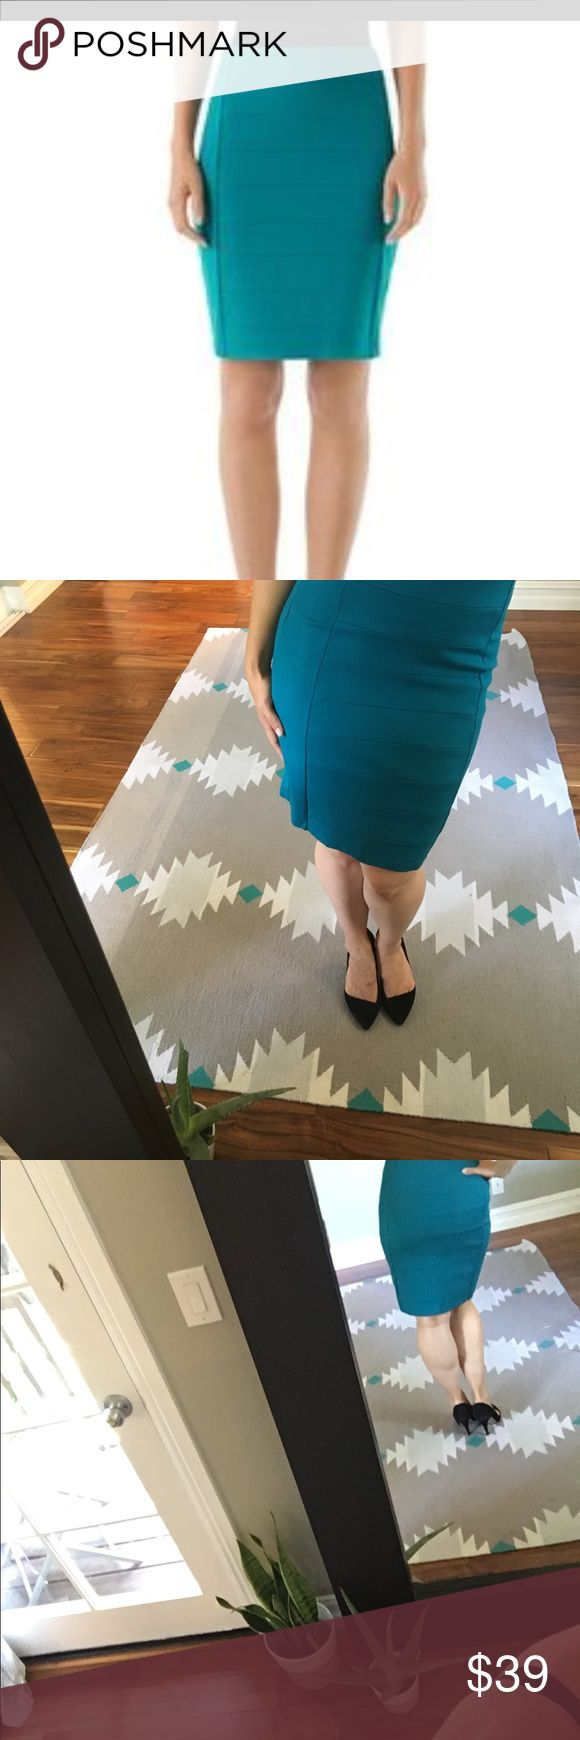 White House Black Market Teal Skirt This skirt is great for work or on a date night out! It fits like a glove and is of great quality! Never worn before! White House Black Market Skirts Pencil